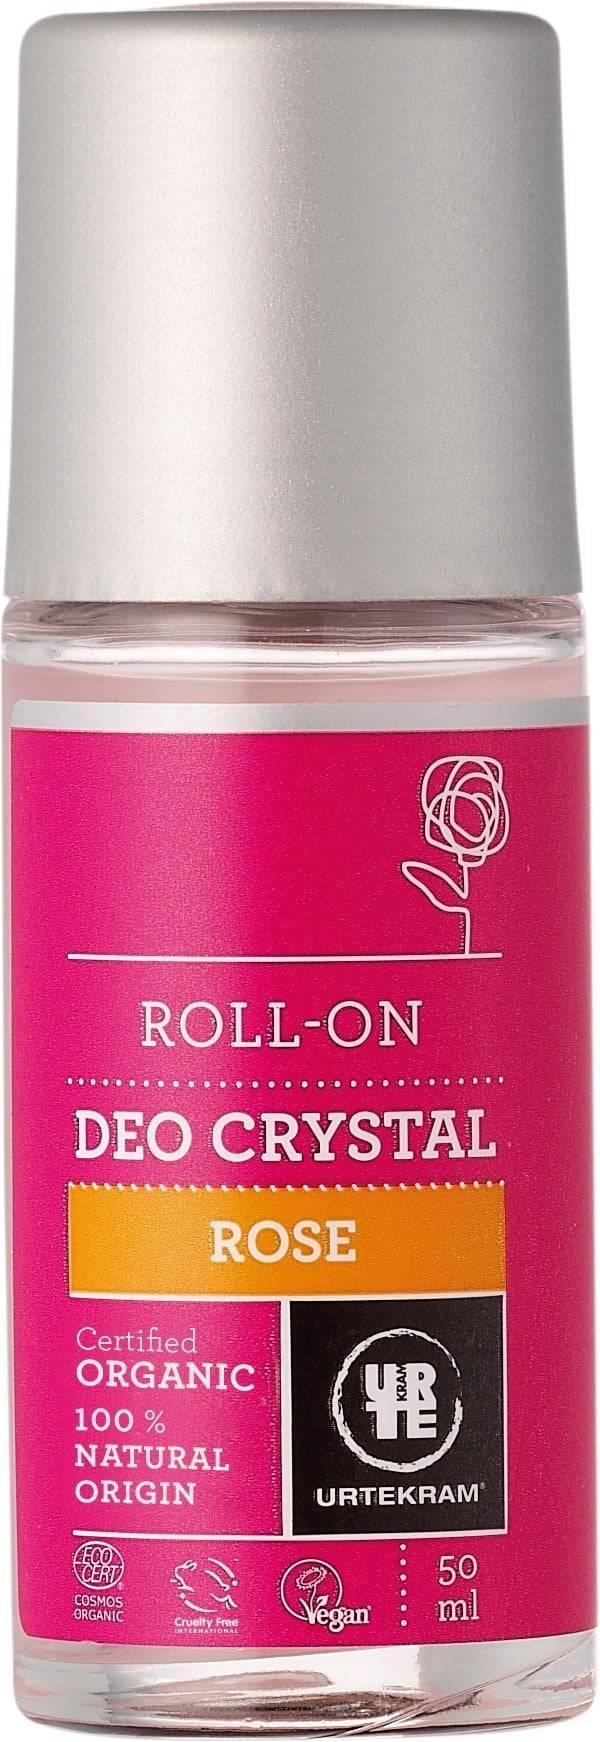 Urtekram Rose Kristall Deo Roll-on - 50 ml